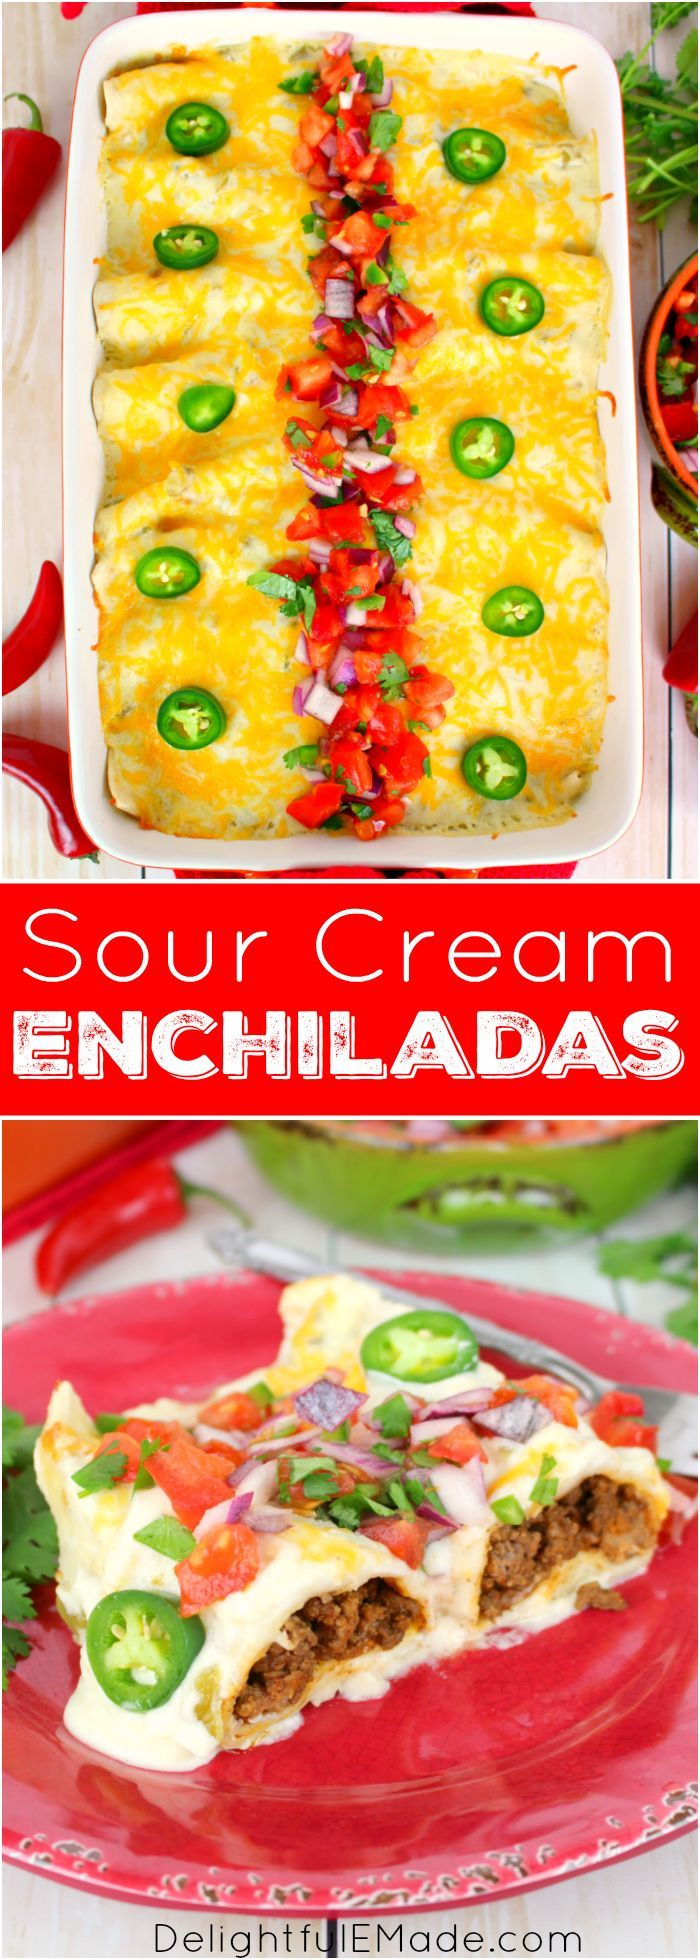 The only enchilada recipe you'll ever need! Stuffed with ...